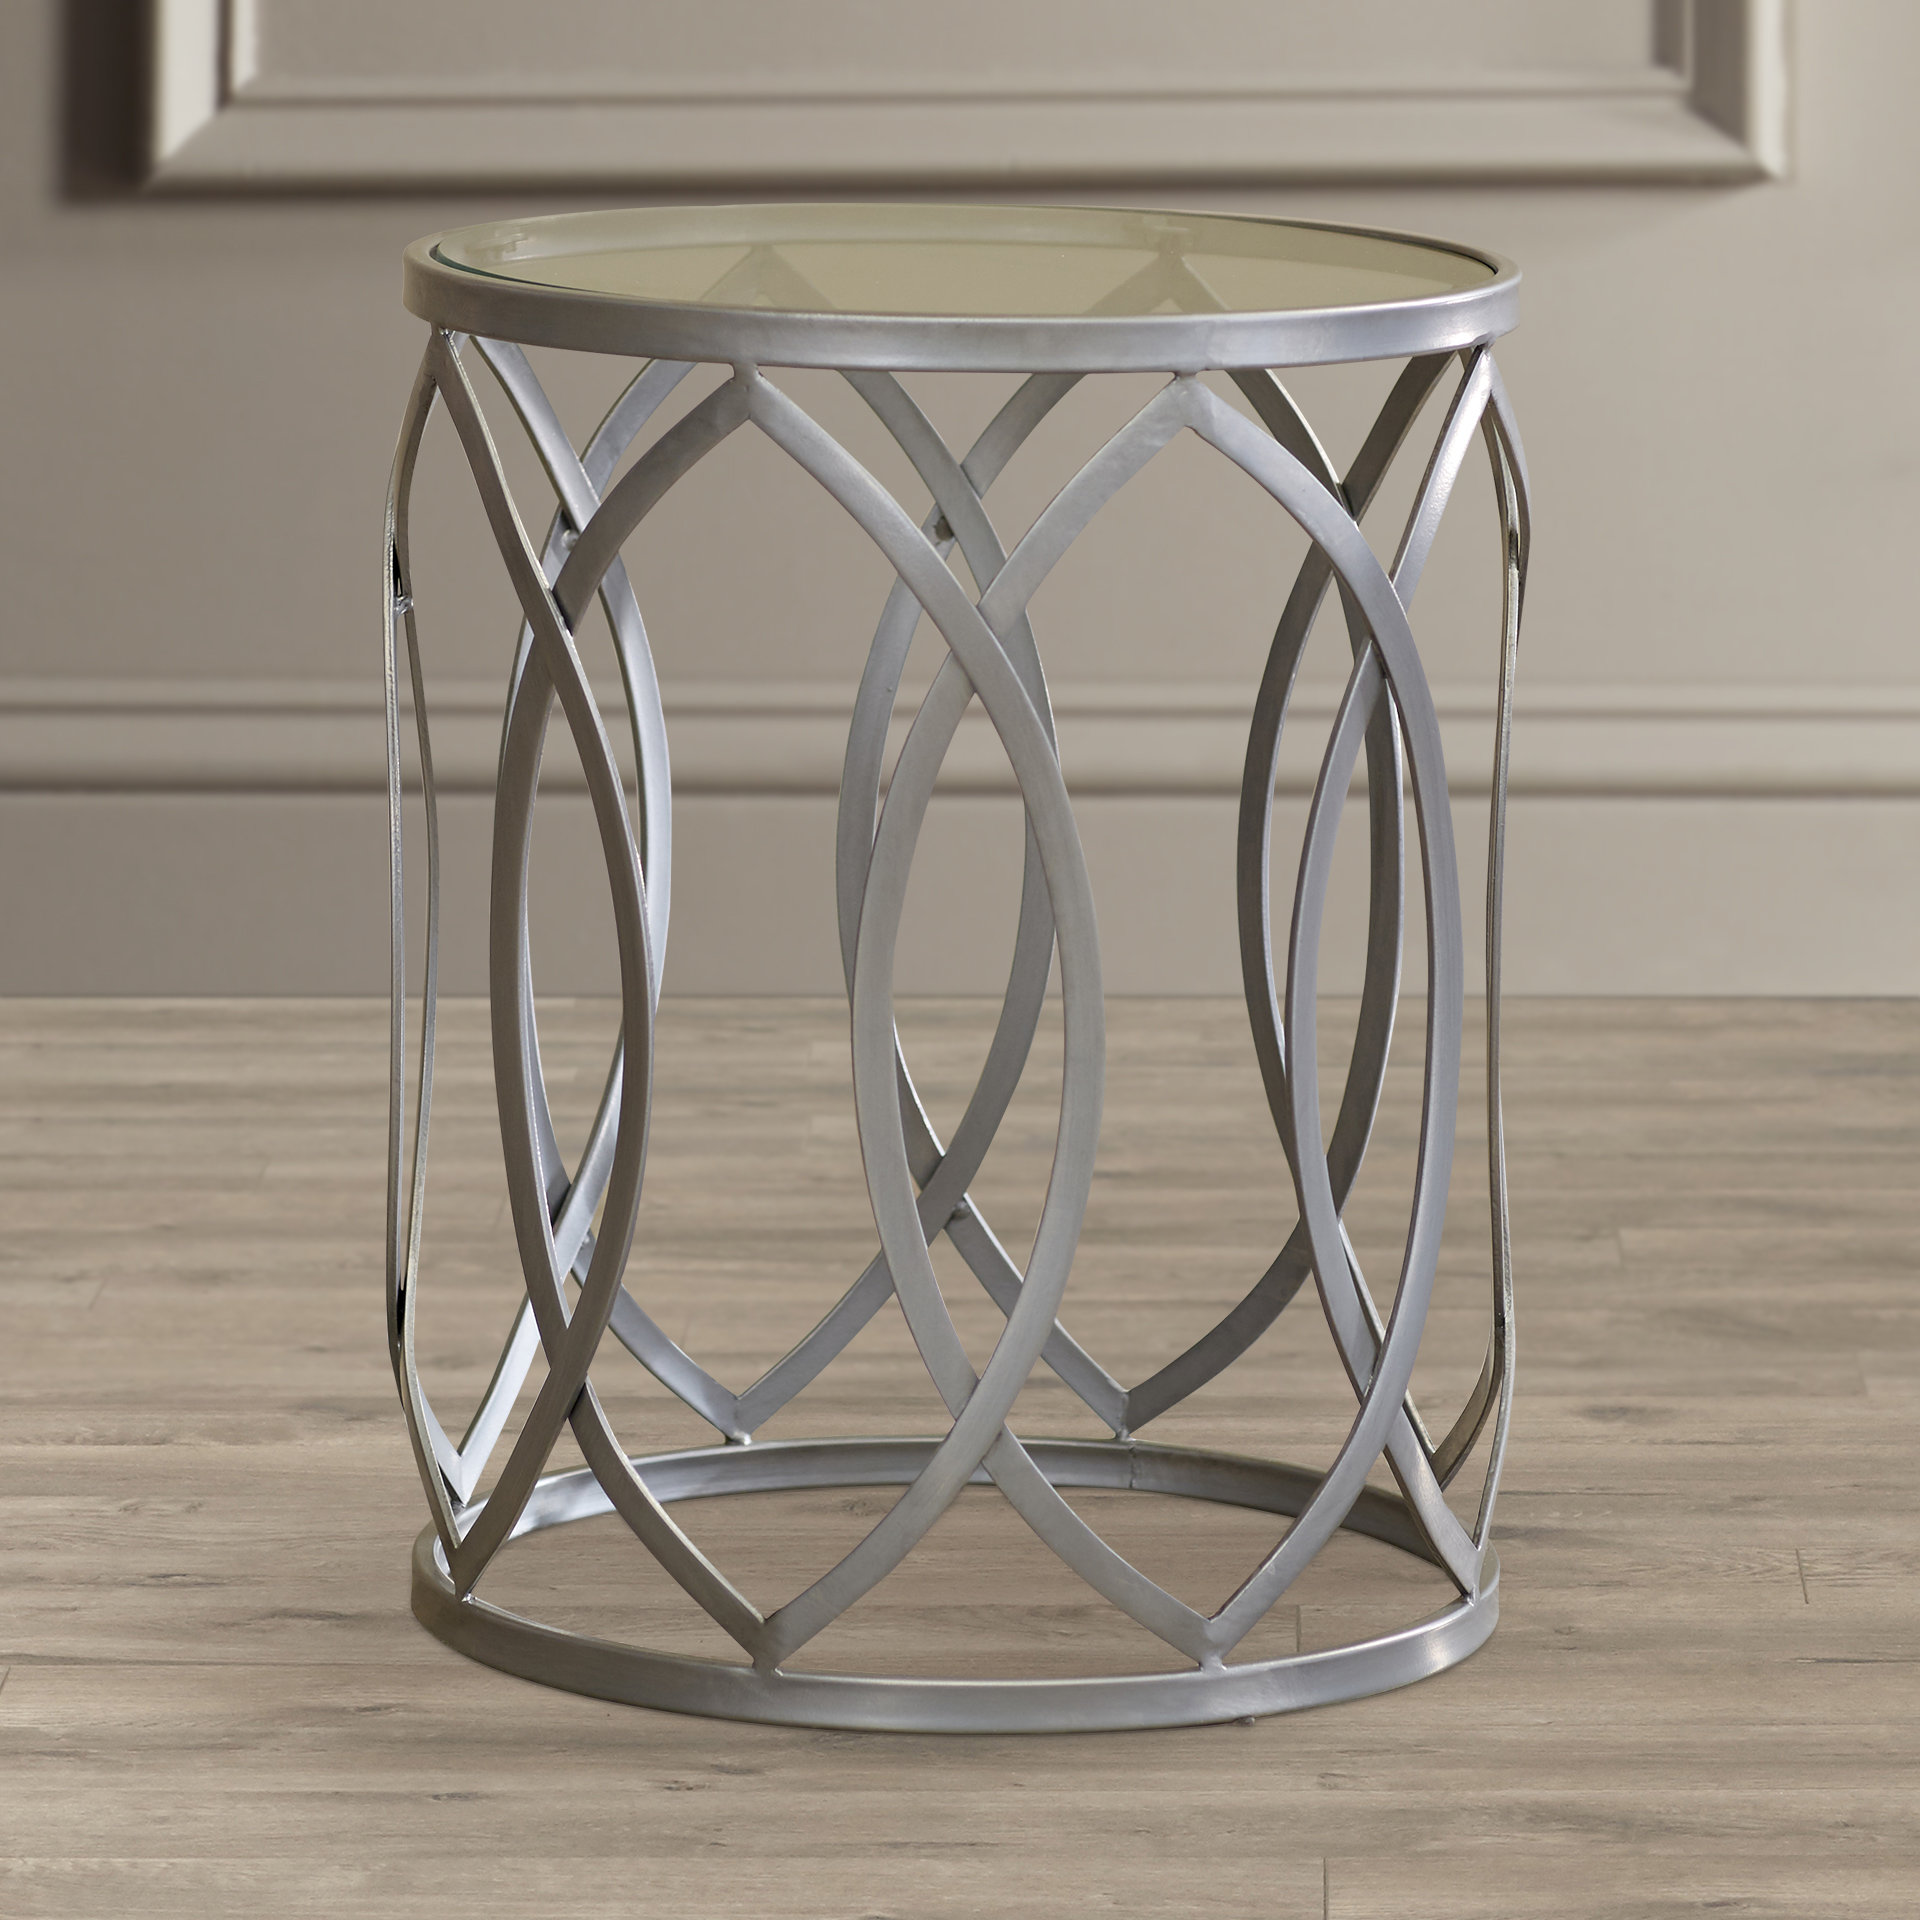 boho end table kehl metal eyelet accent keter ice unique small side tables hammary red decor drum kit stool average coffee height kitchen dining room black glass and chrome large